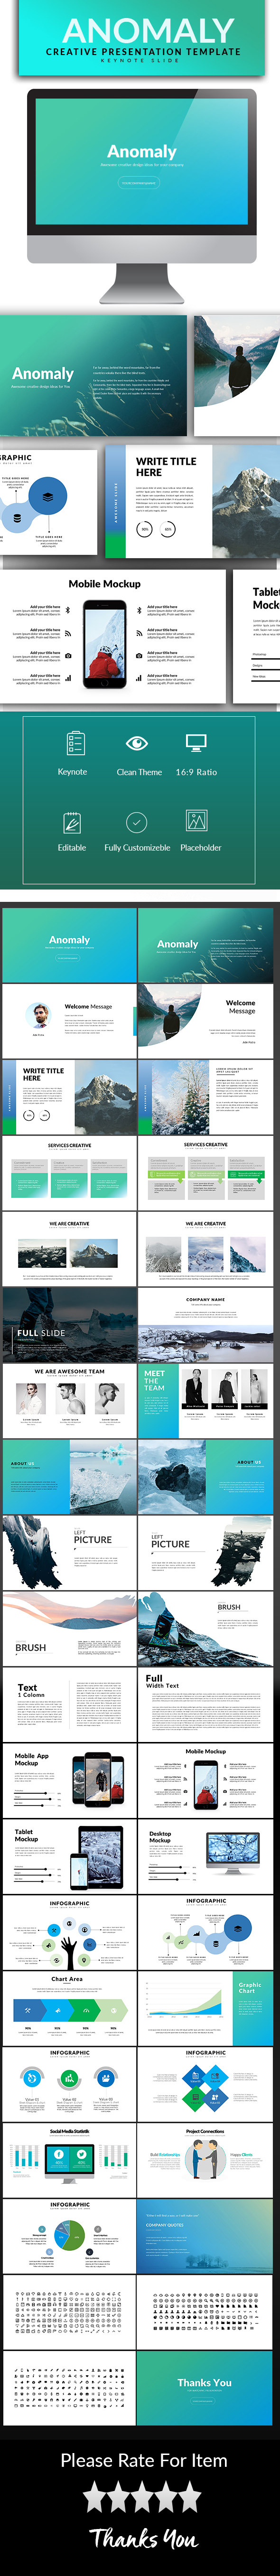 Anomaly Keynote Template - Keynote Templates Presentation Templates